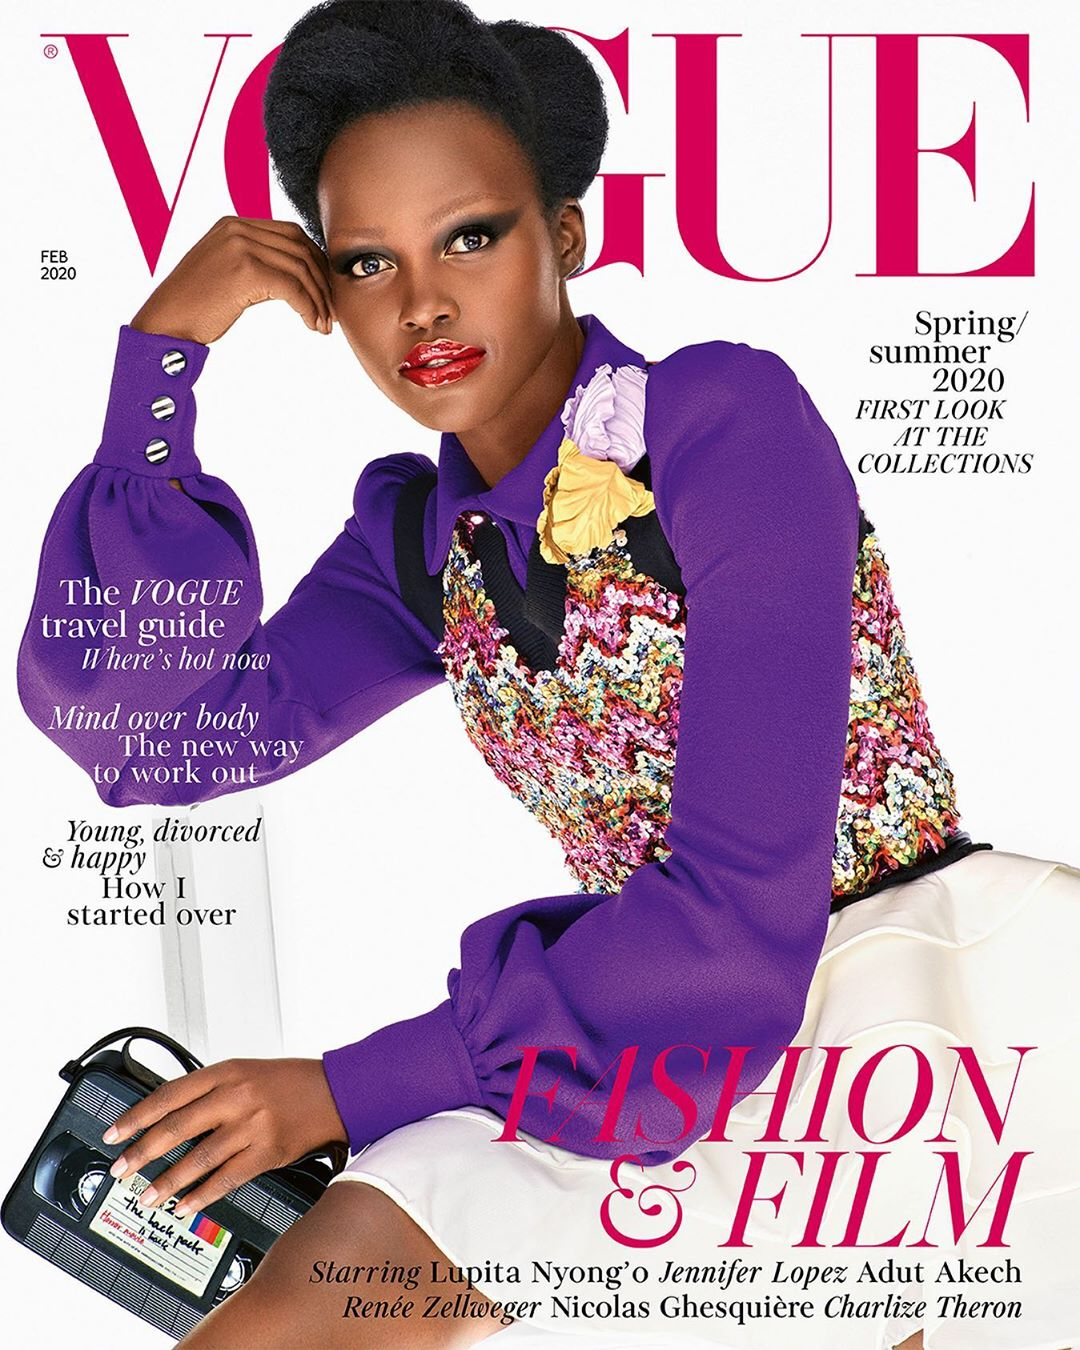 3-revelations-by-lupita-nyongo-as-she-lands-her-first-british-vogue-cover